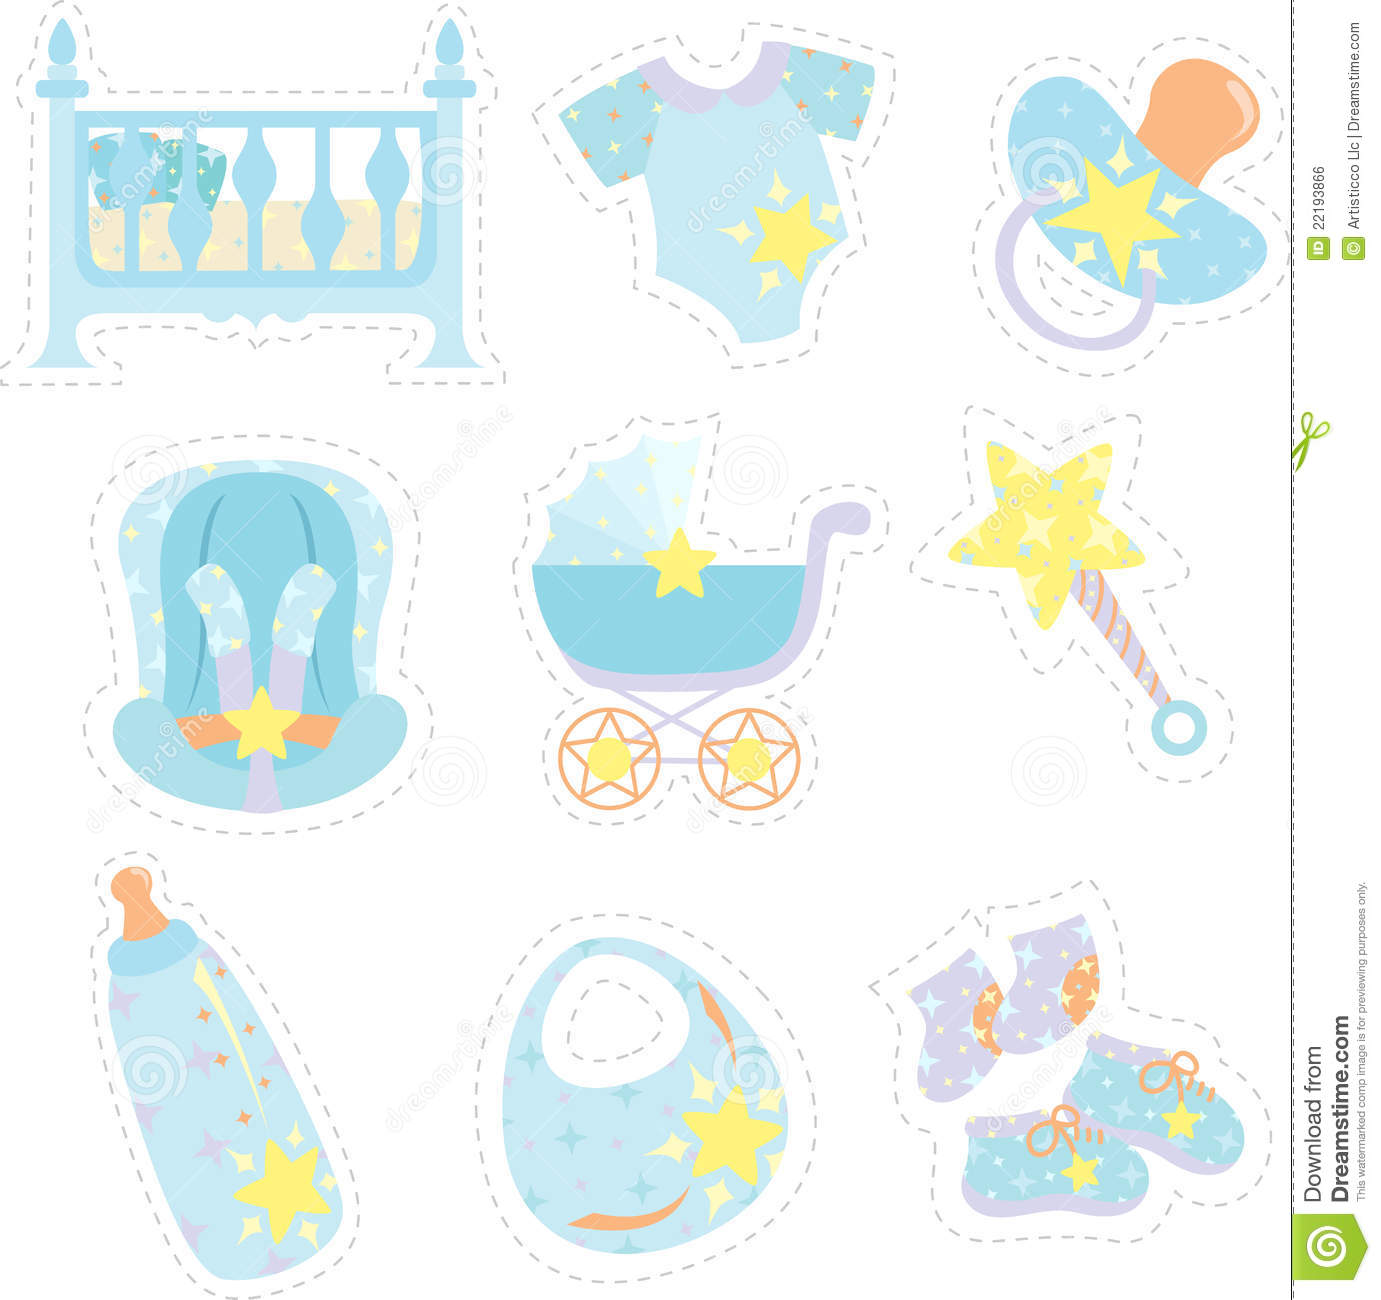 Baby Boy Items Icons Royalty Free Stock Image - Image: 22193866